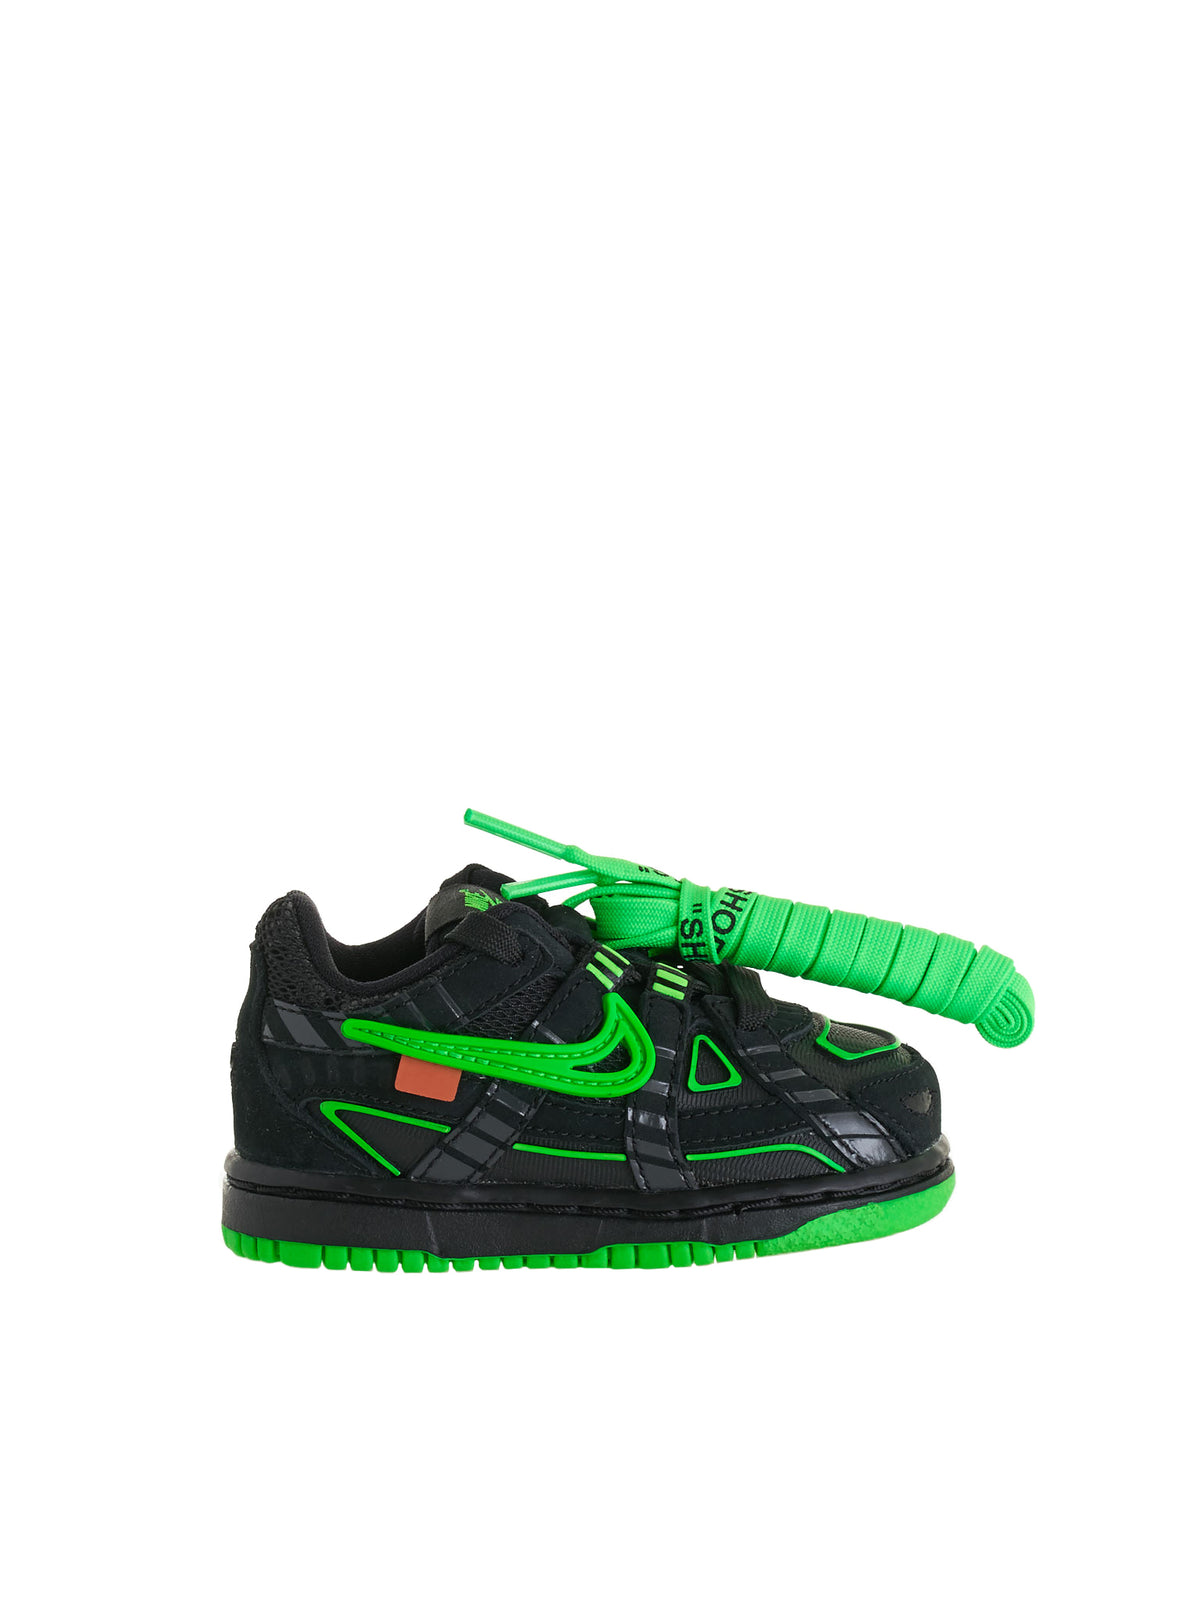 Toddler Nike Air Rubber Dunk Low TD (CW7444-001-BLACK-GREEN)